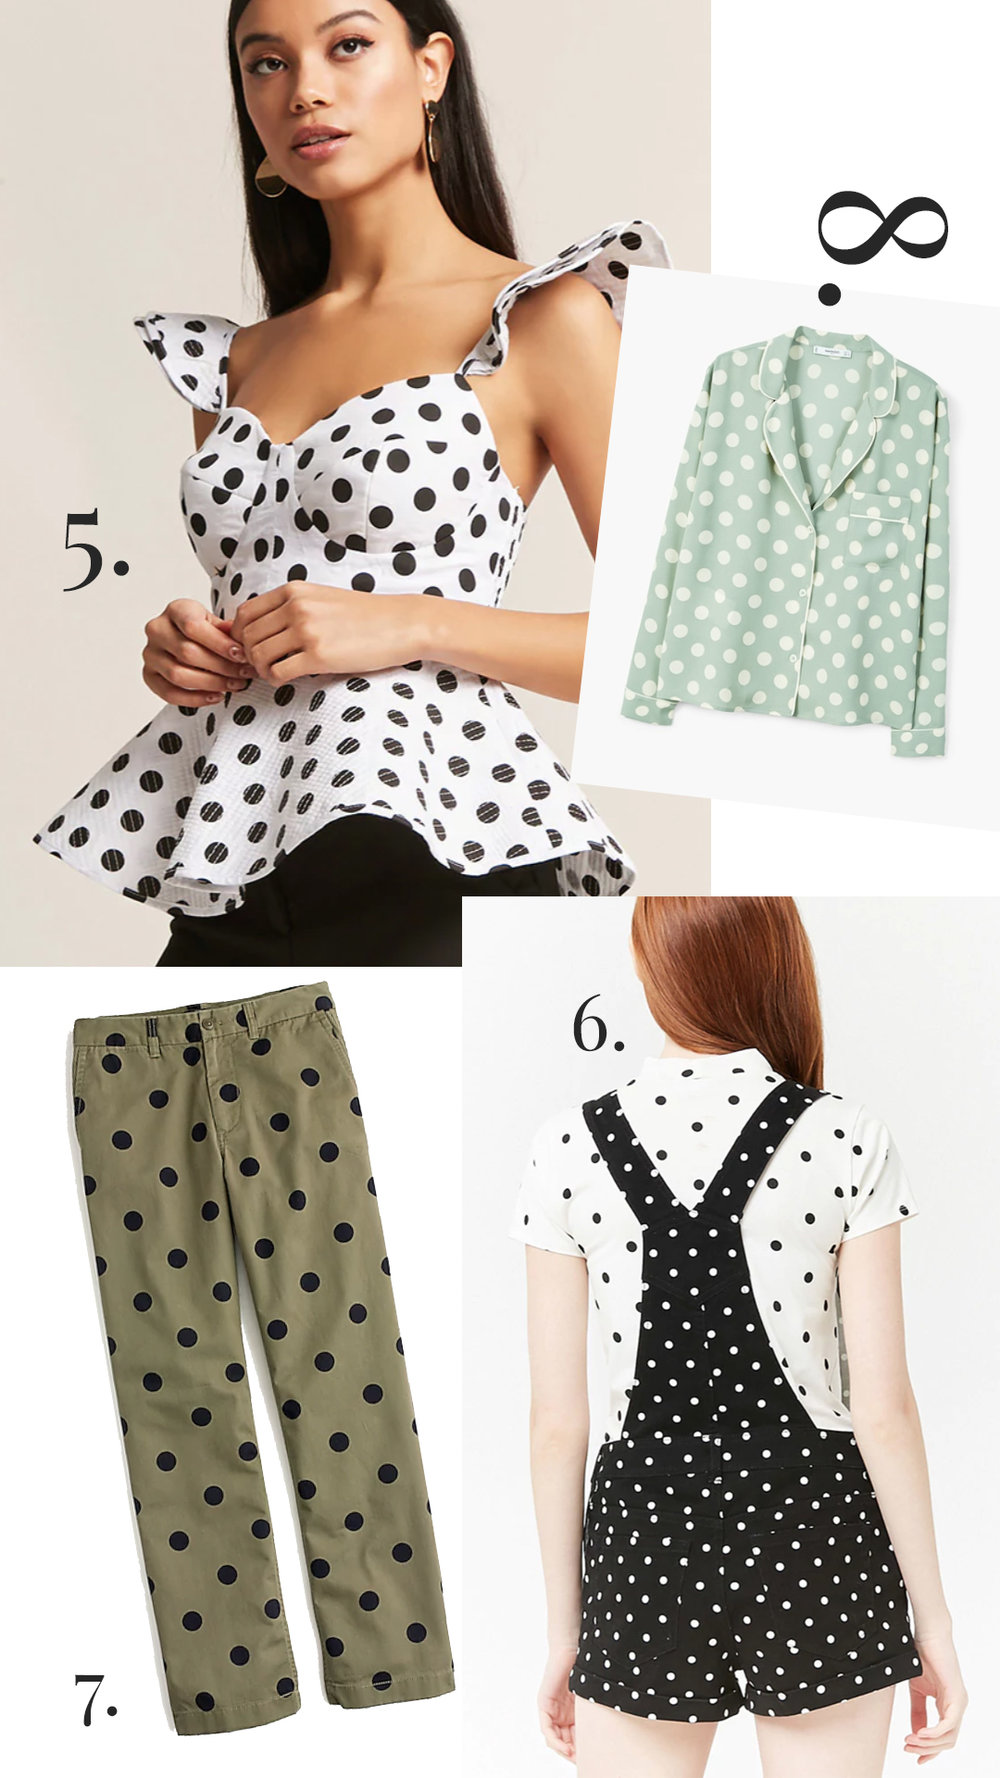 2Polka-dot-report-shop-polka-dot-outfits.jpg